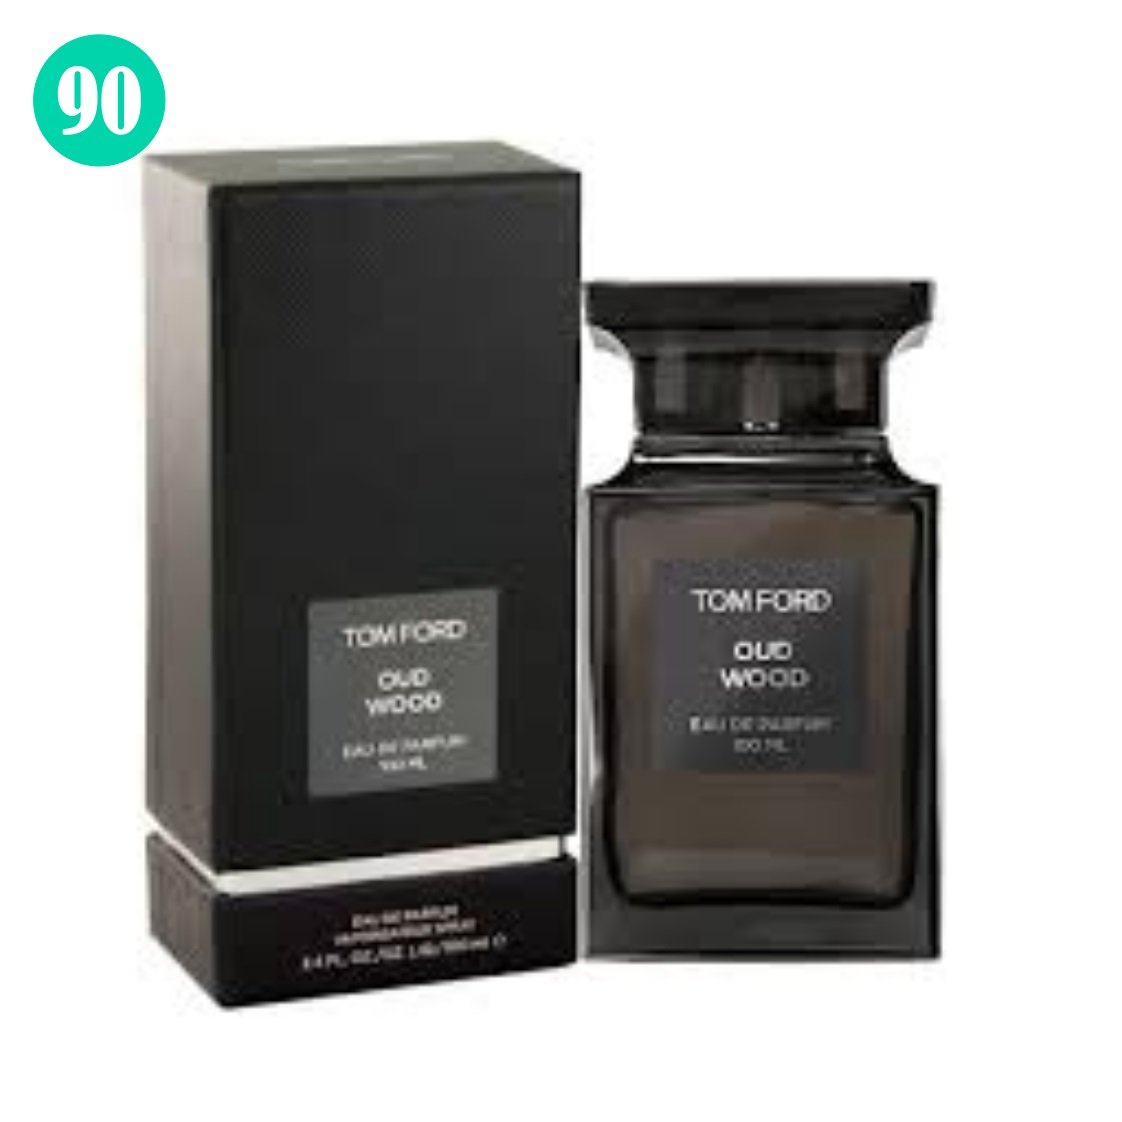 OUD WOOD – Tom Ford unisex